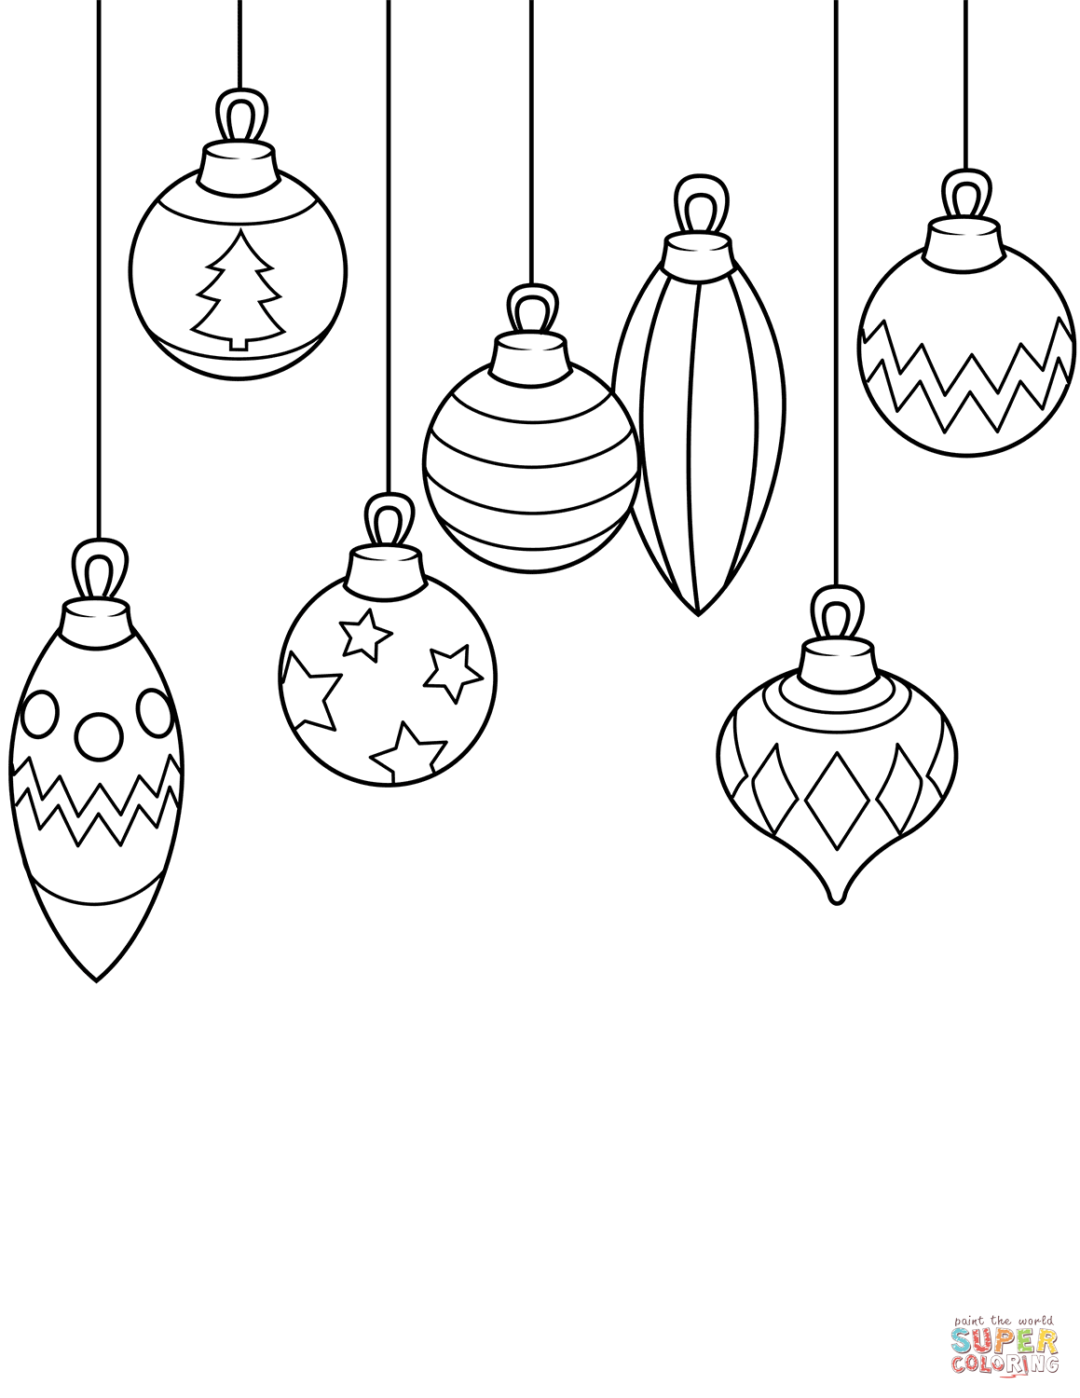 coloring.rocks! Free christmas coloring pages, Christmas